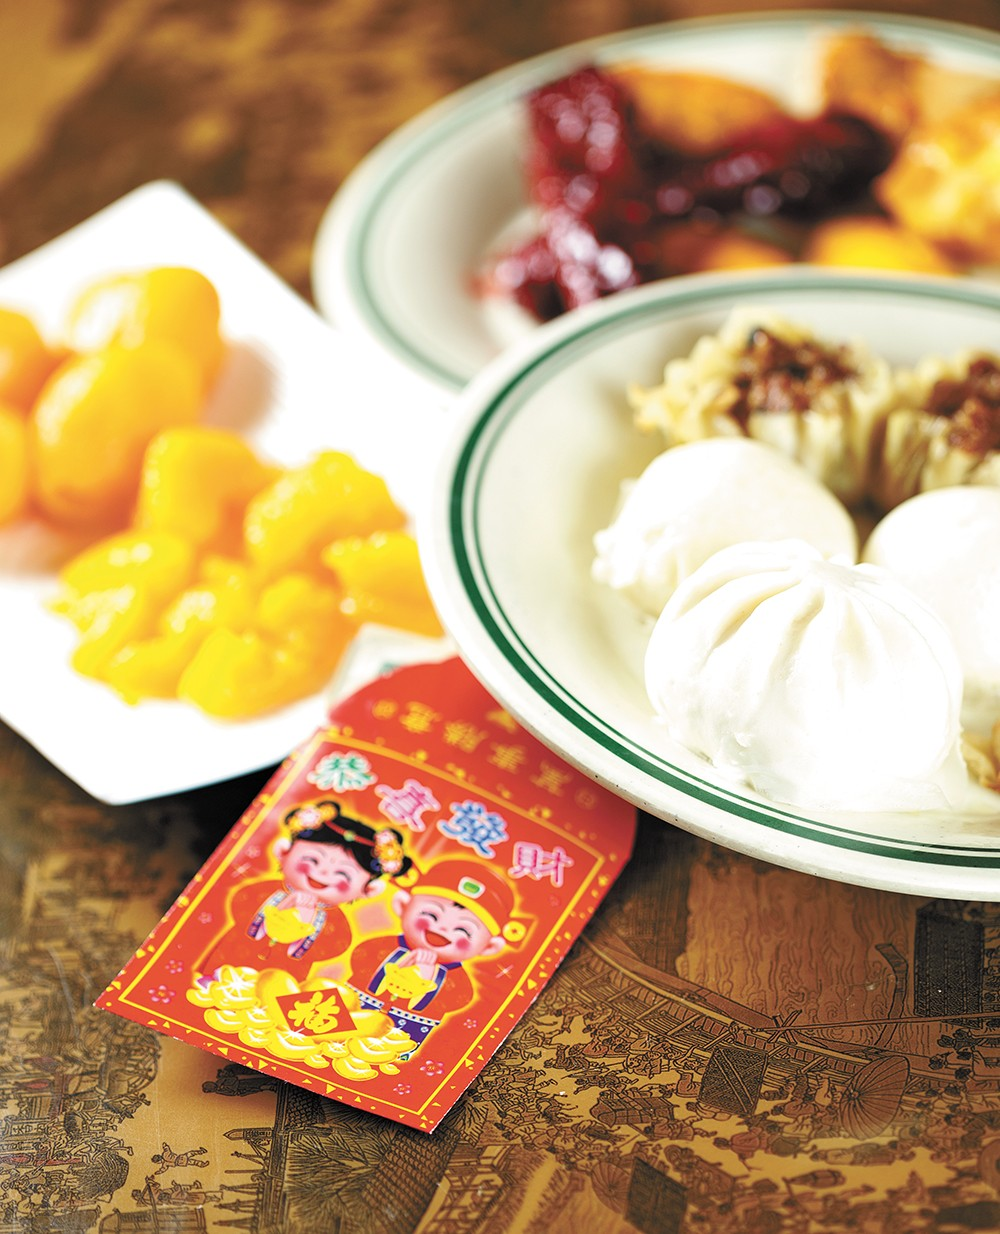 Food from Canaan Buffet, along with the traditional envelopes used to gift money. - YOUNG KWAK